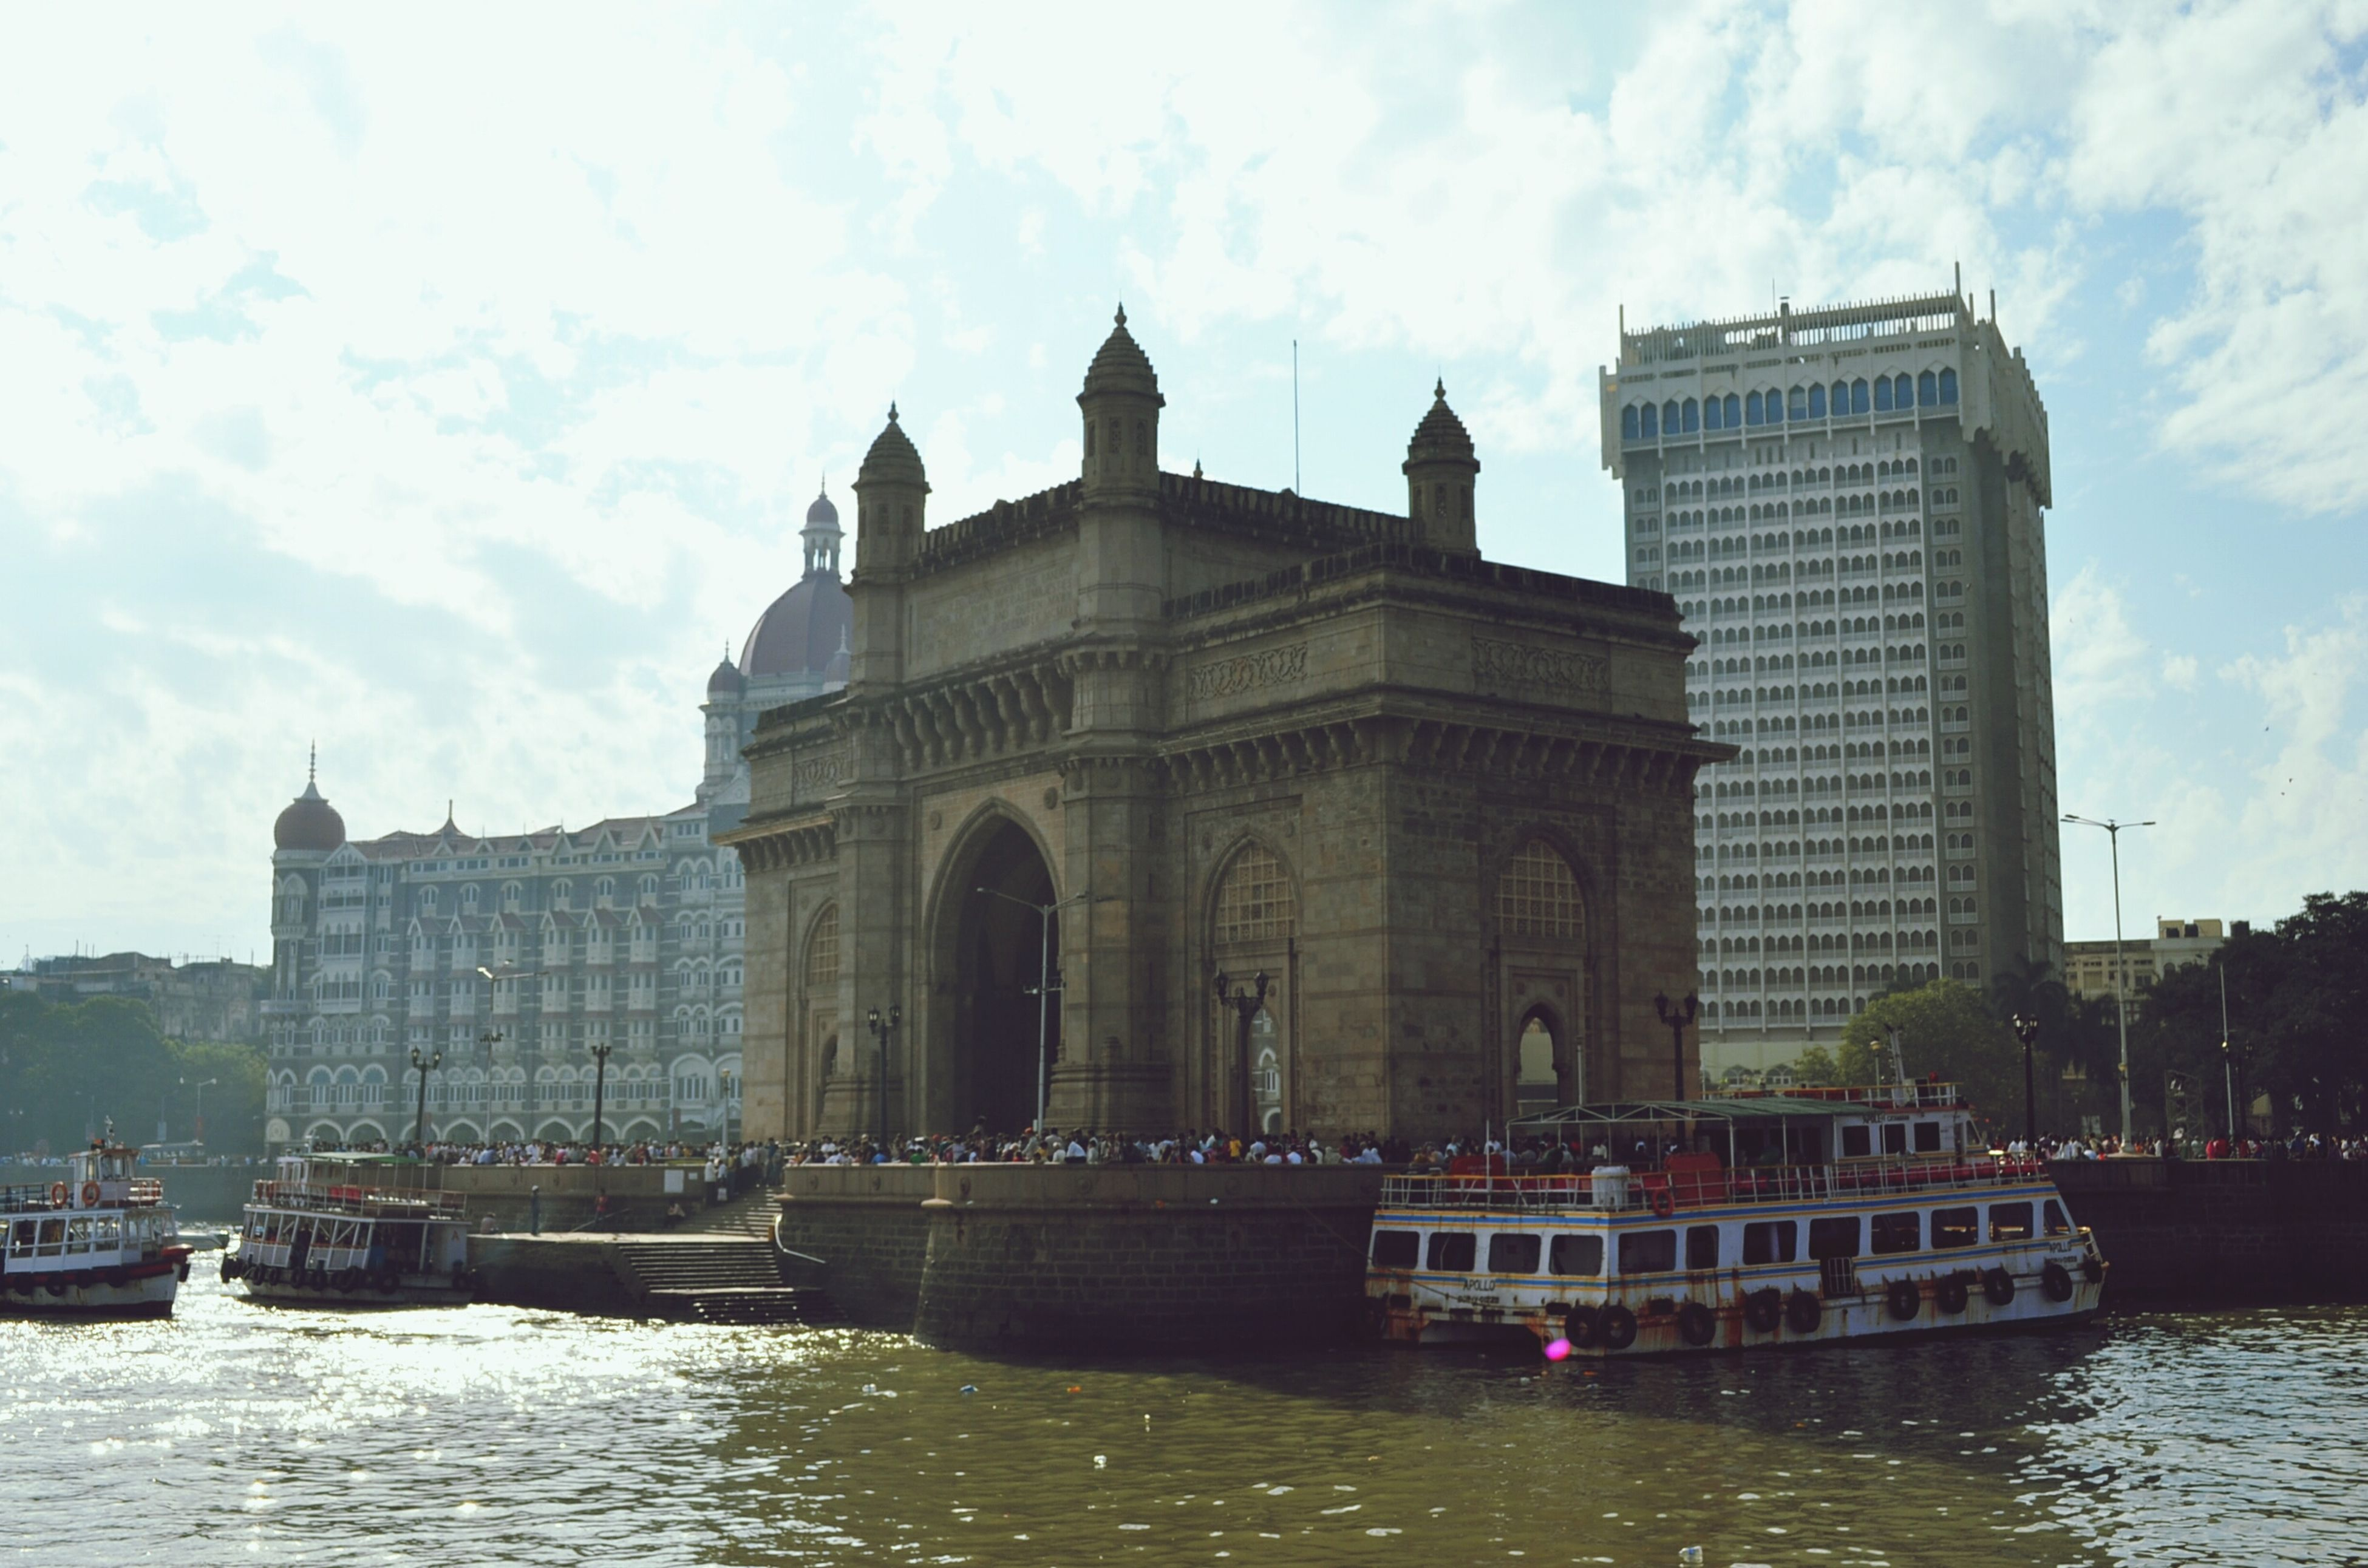 architecture, building exterior, built structure, water, waterfront, sky, transportation, nautical vessel, mode of transport, river, travel, boat, travel destinations, cloud - sky, famous place, city, incidental people, canal, tourism, history